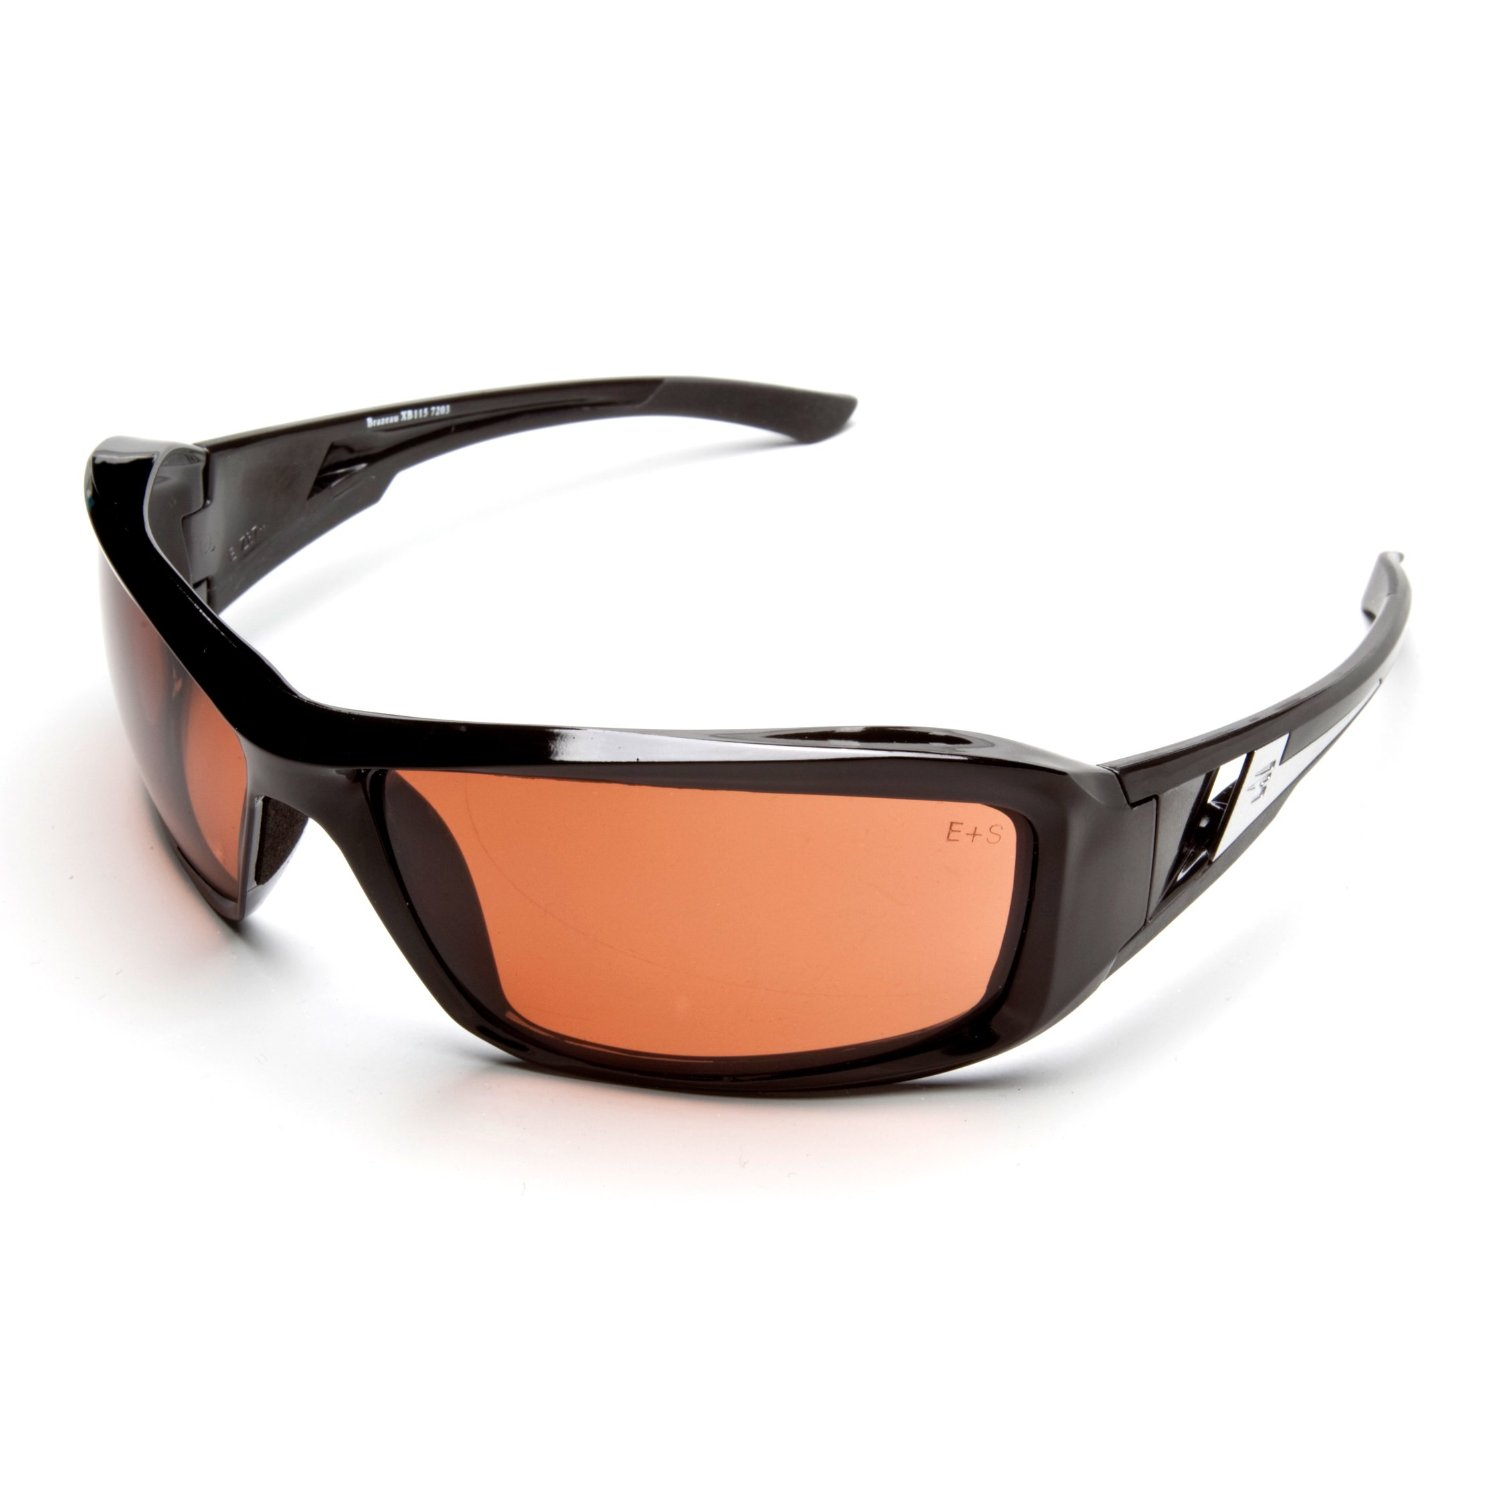 Cheap Prescription Safety Glasses